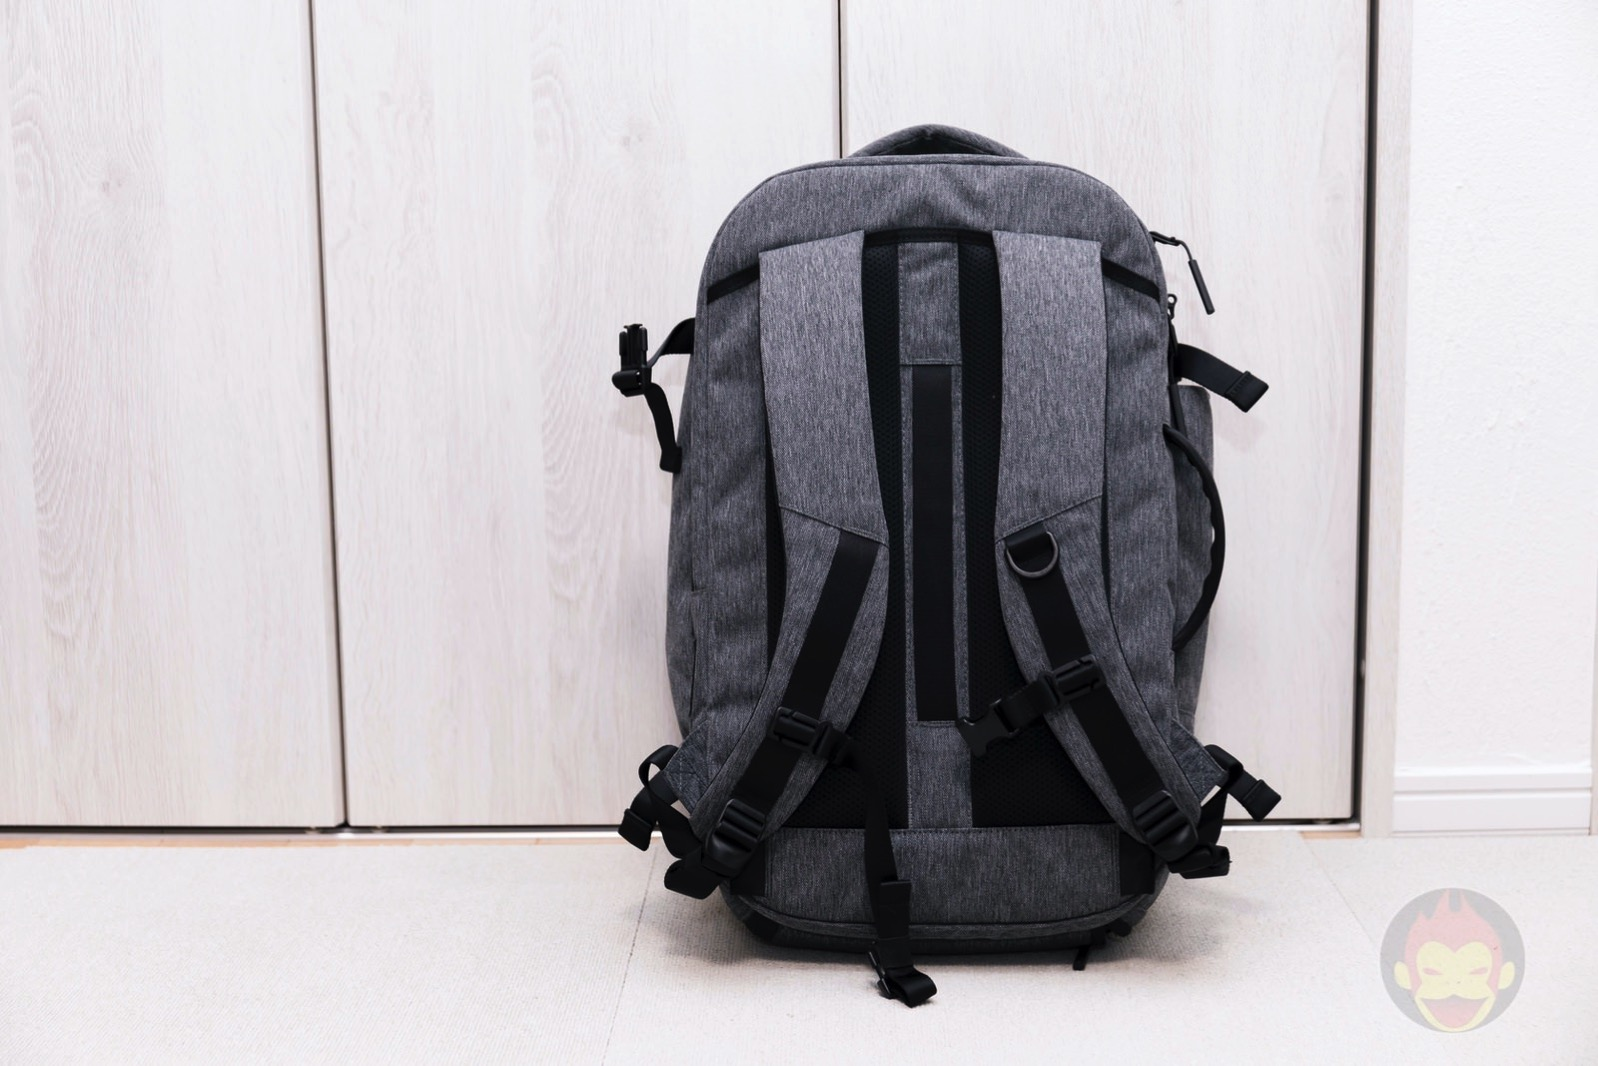 Aer Travel Pack 2 Backpack Review 06